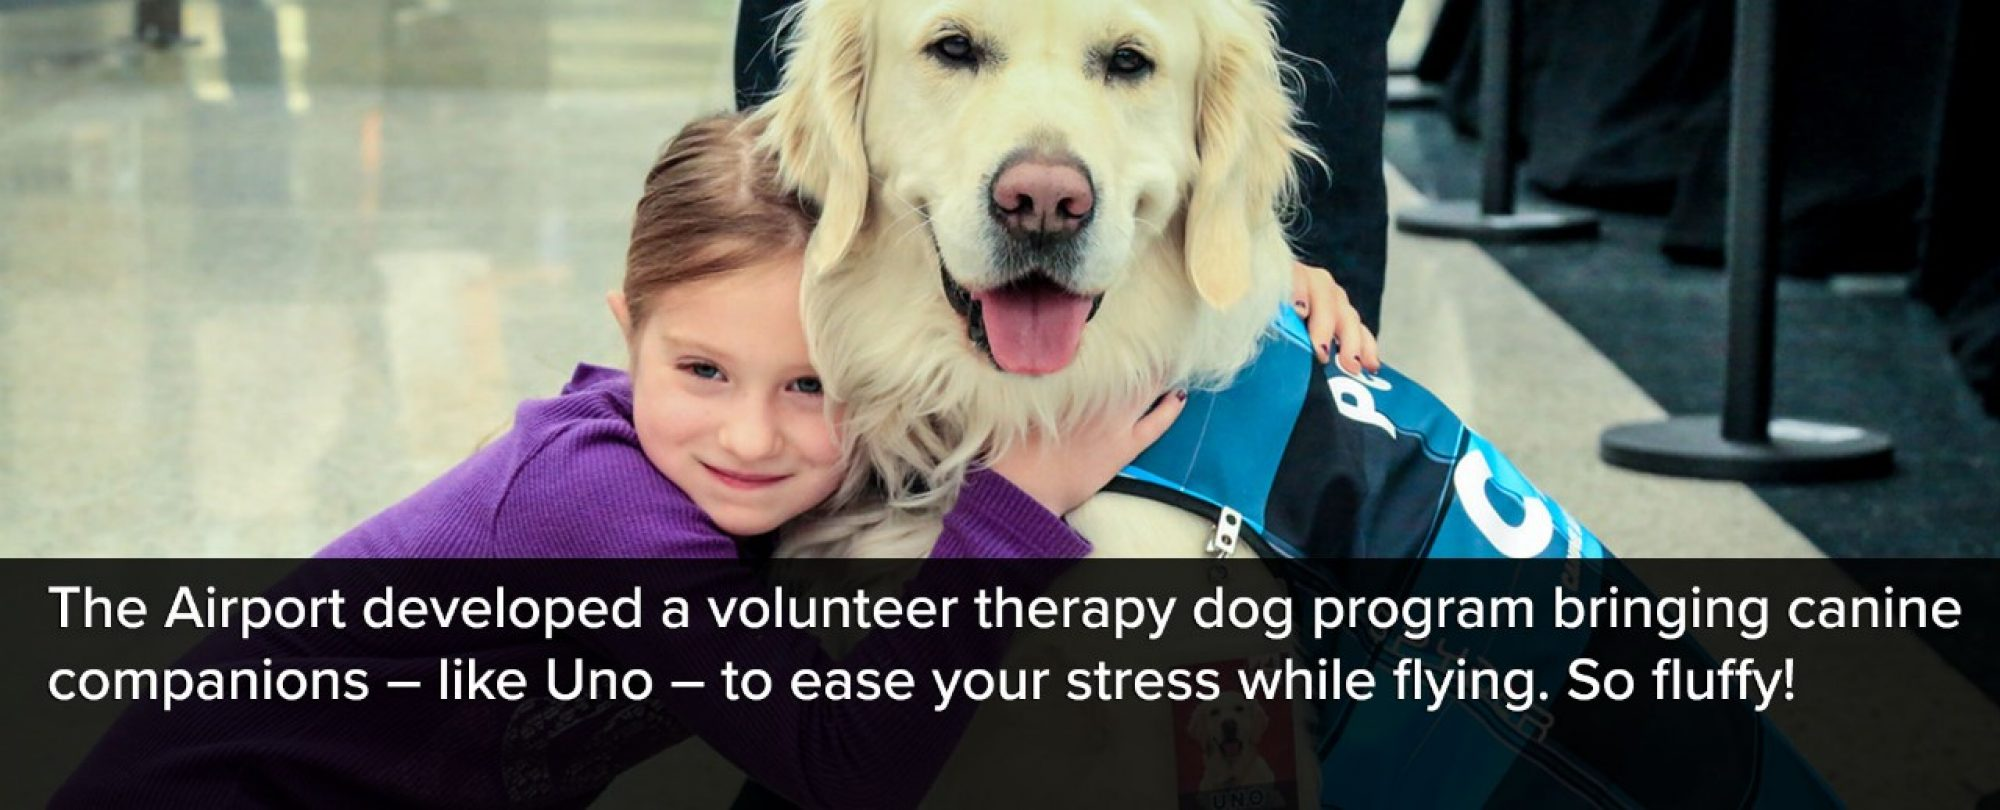 Photo of young girl with the DIA therapy dog, Uno. The Airport developed a volunteer therapy dog program bringing canine companions, like Uno, to ease your stress while flying. So fluffy!